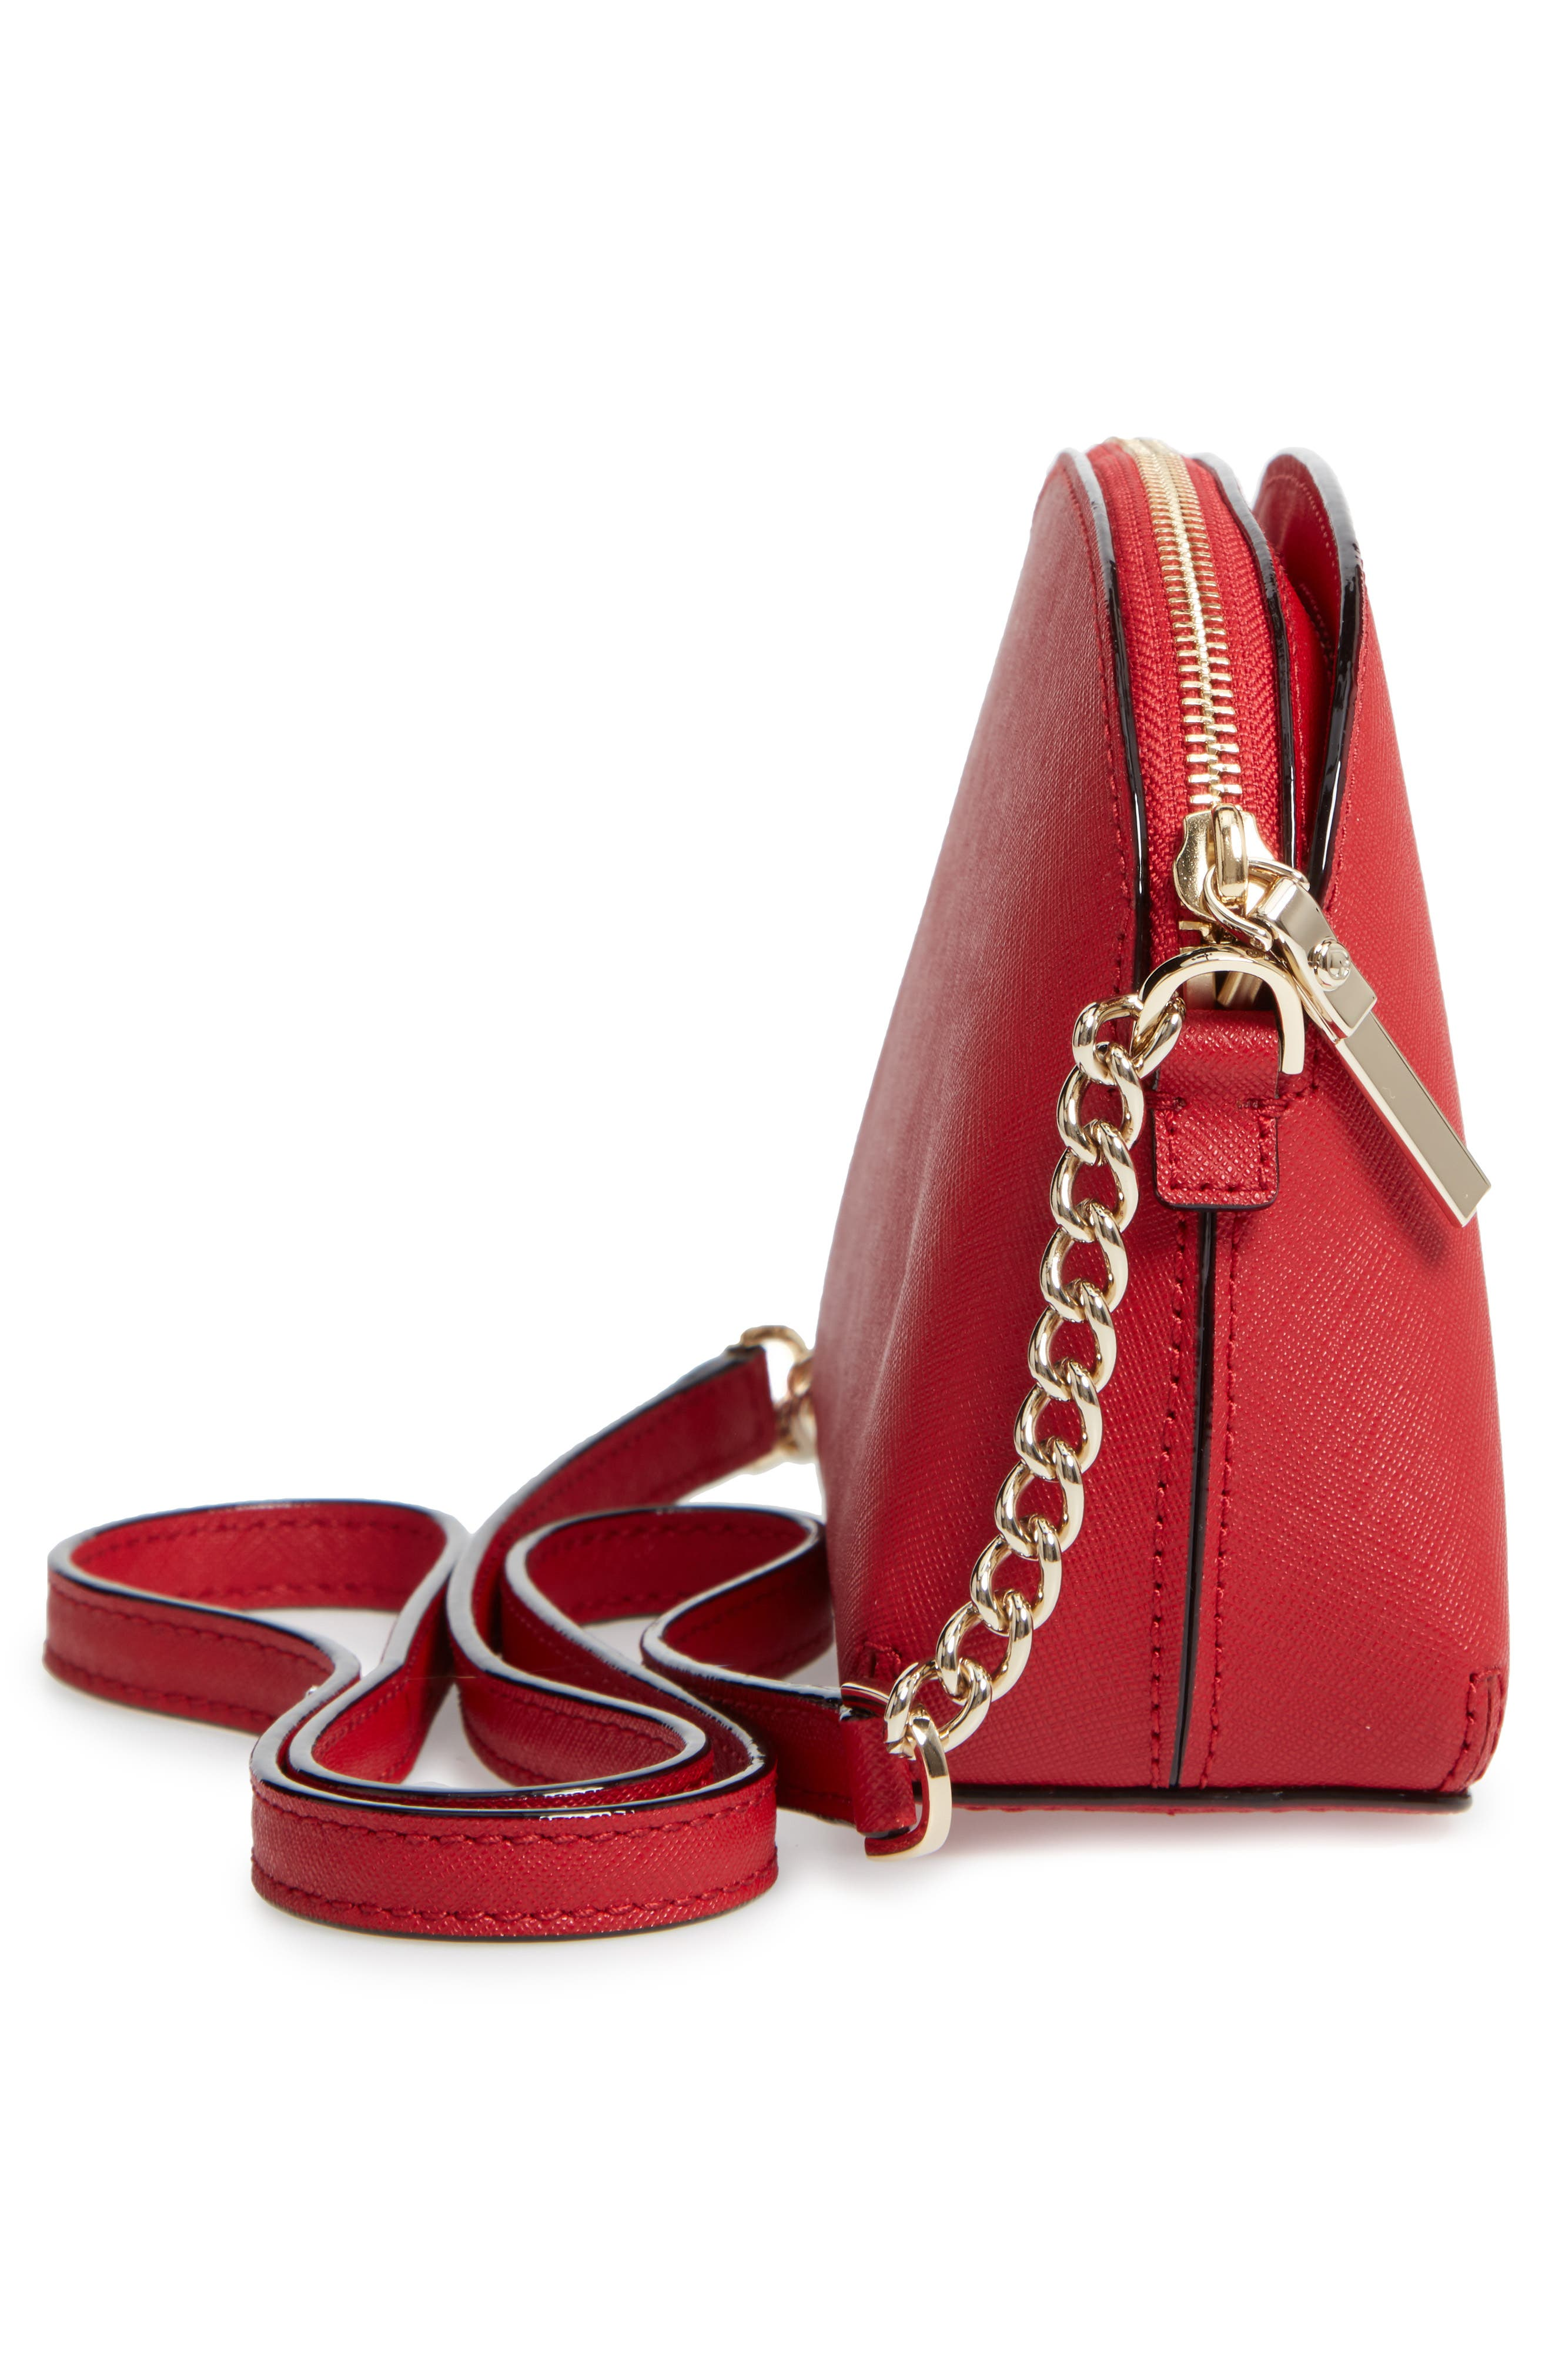 cameron street - hilli leather crossbody bag,                             Alternate thumbnail 5, color,                             600